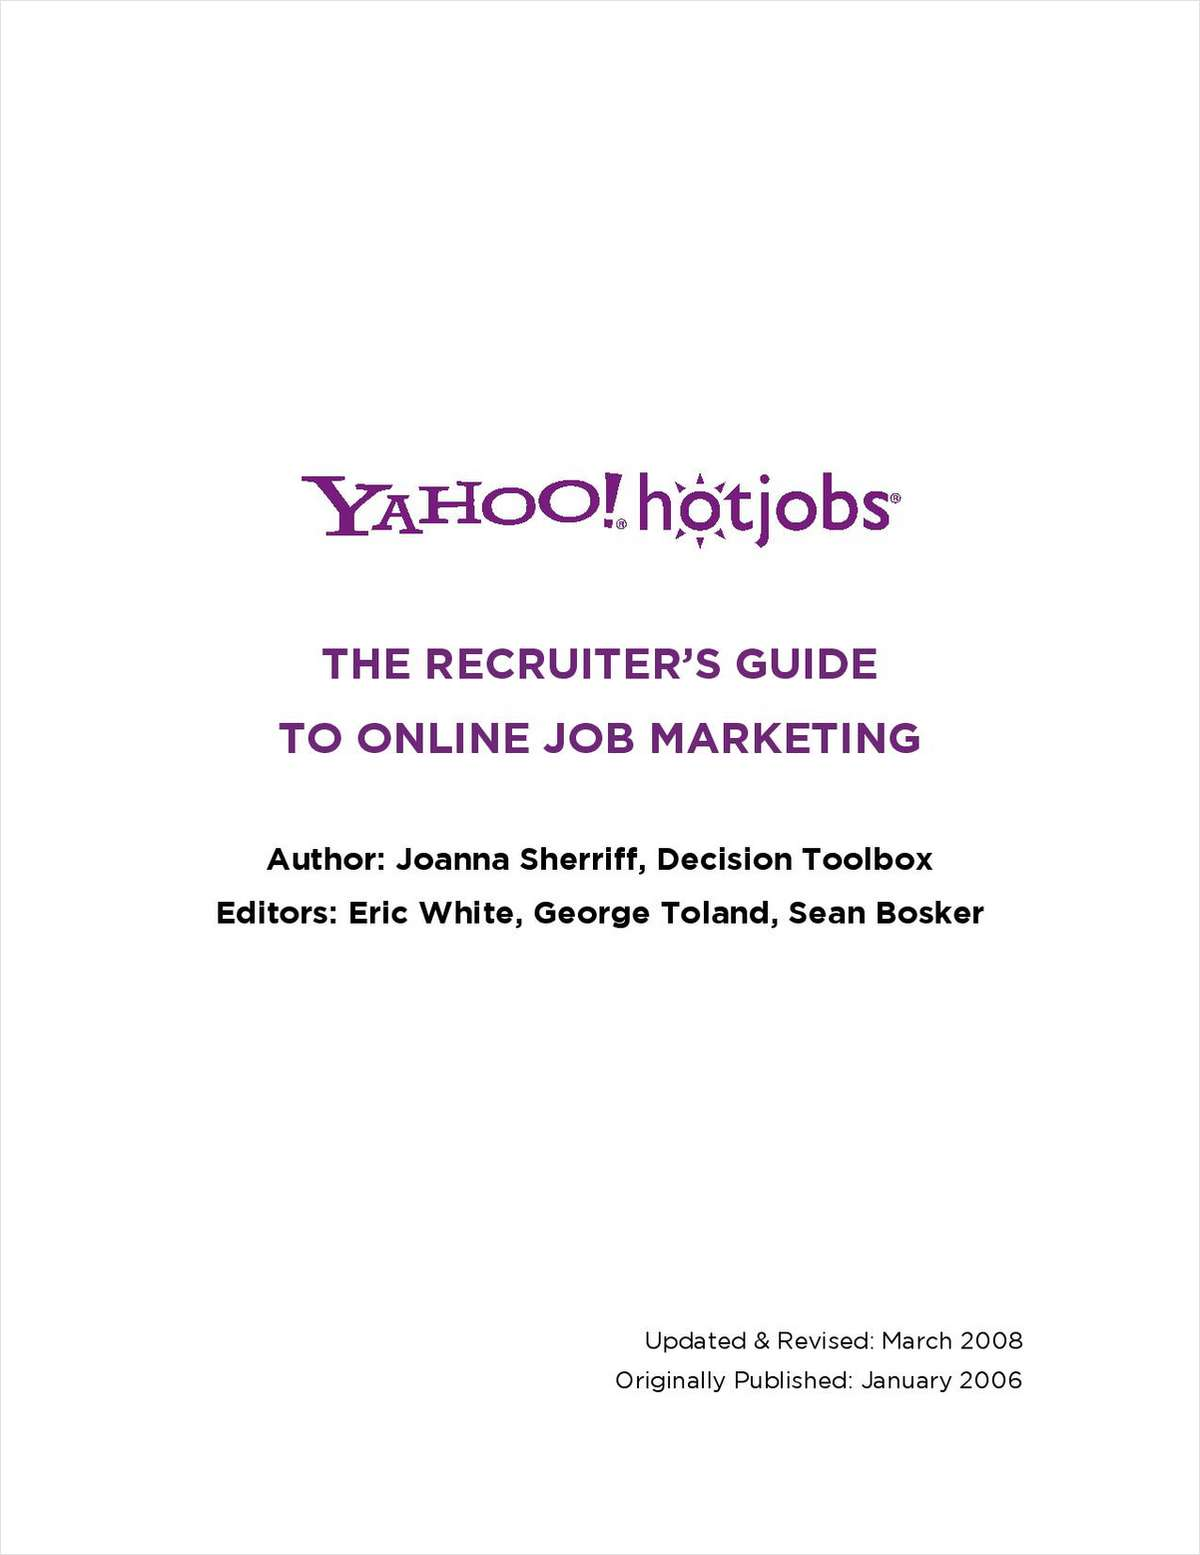 The Recruiter's Guide to Online Job Marketing